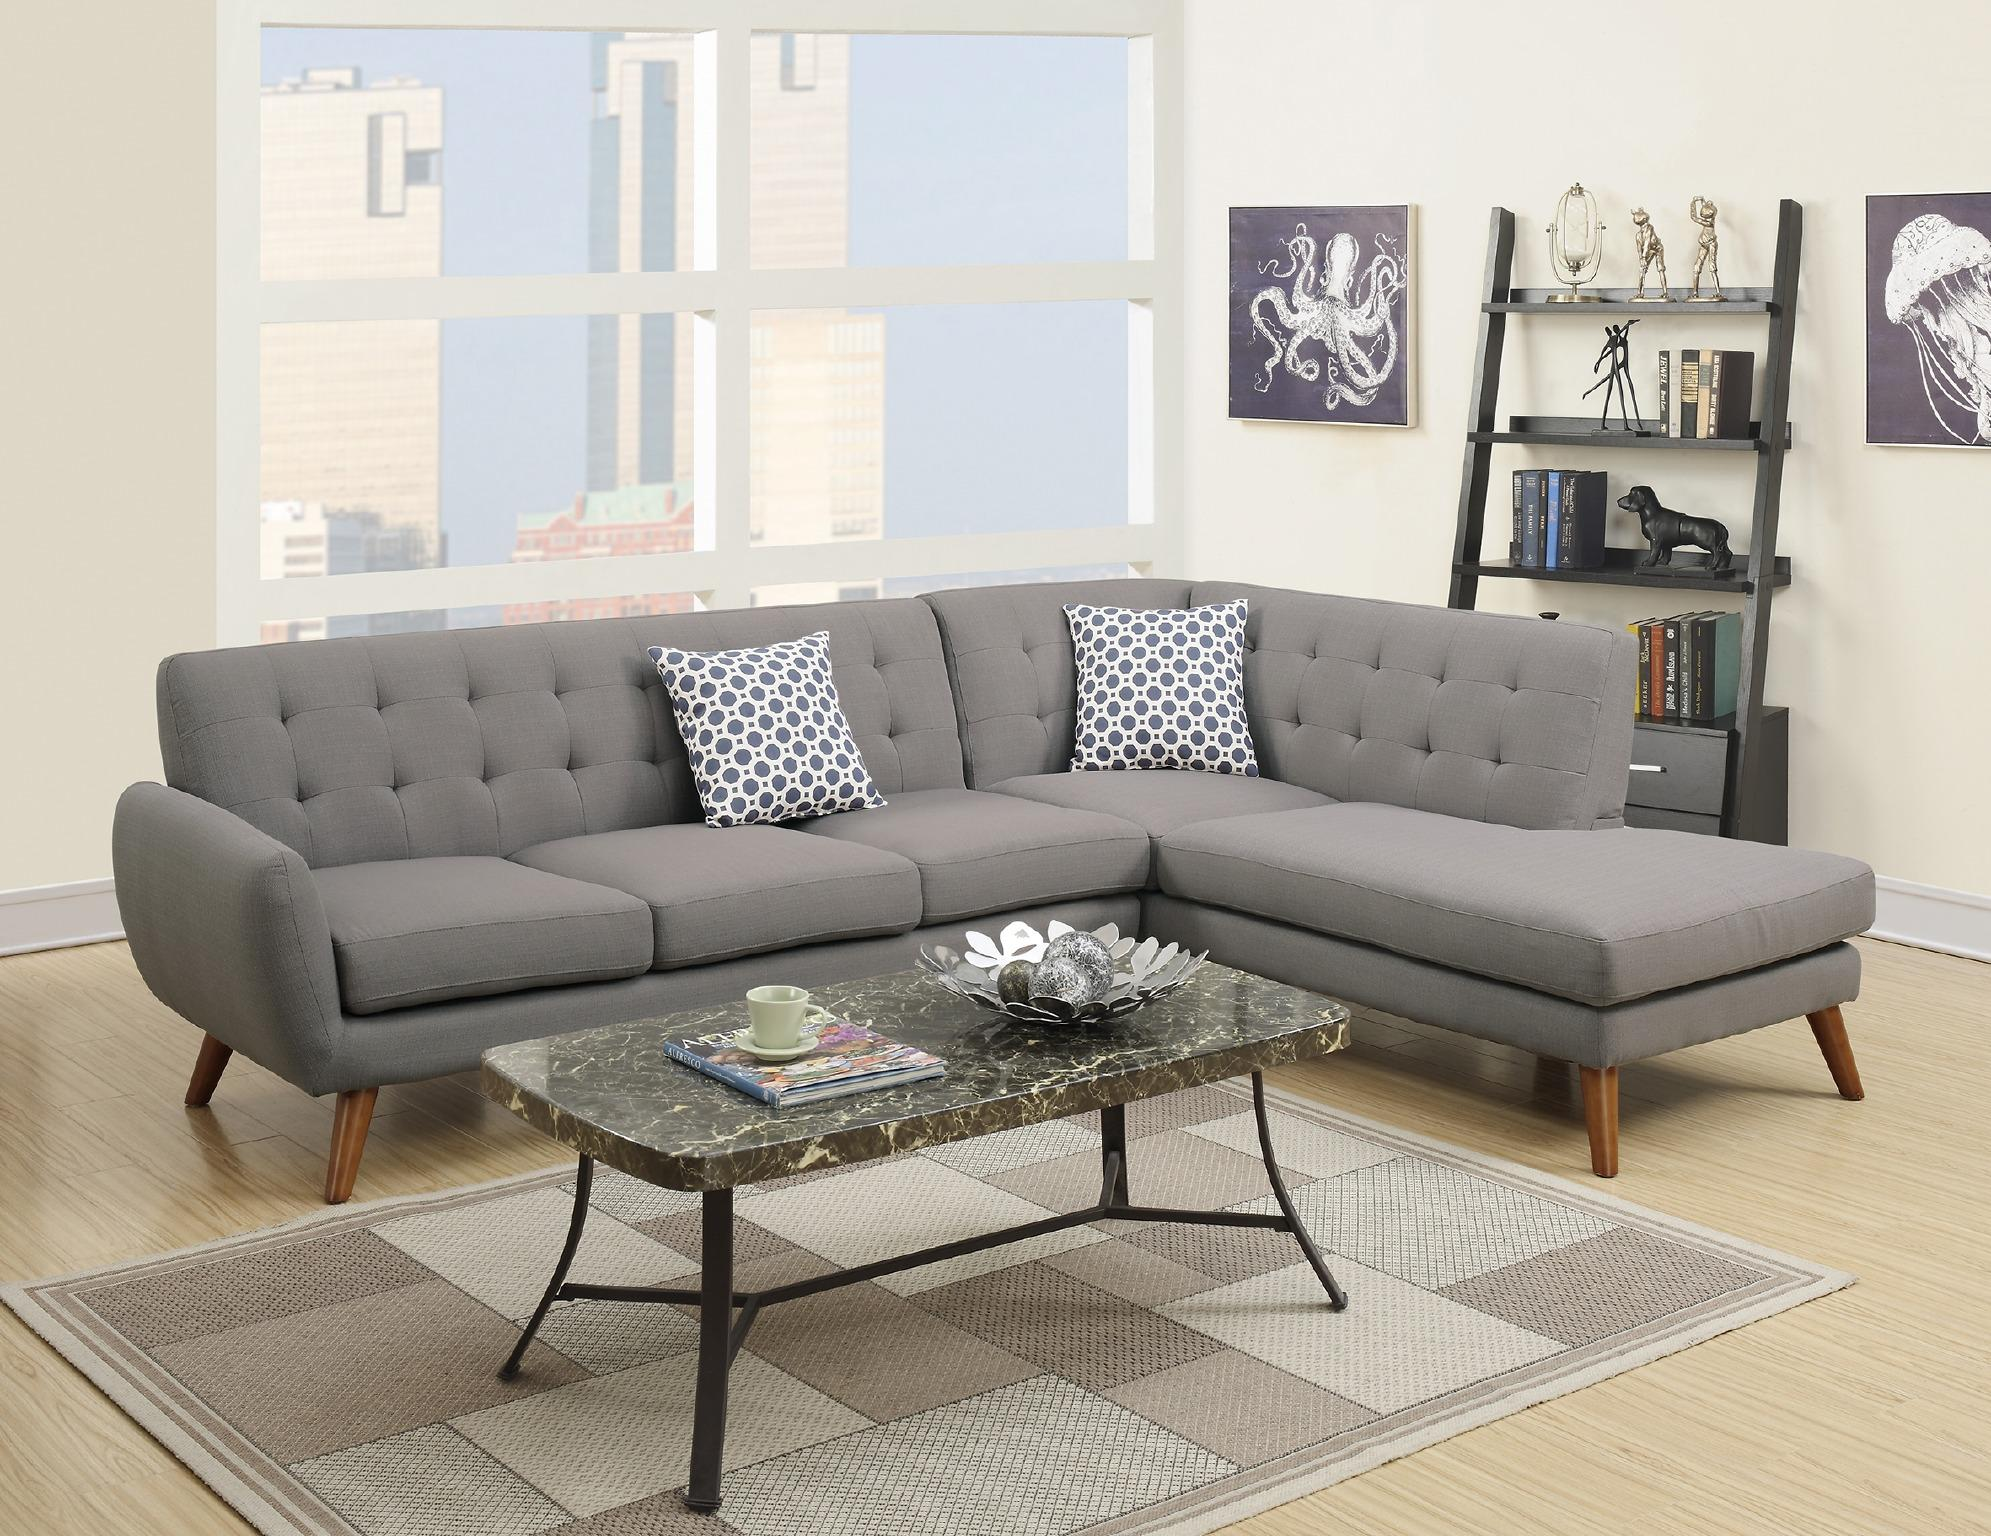 Modern Retro Sectional Sofa, Grey